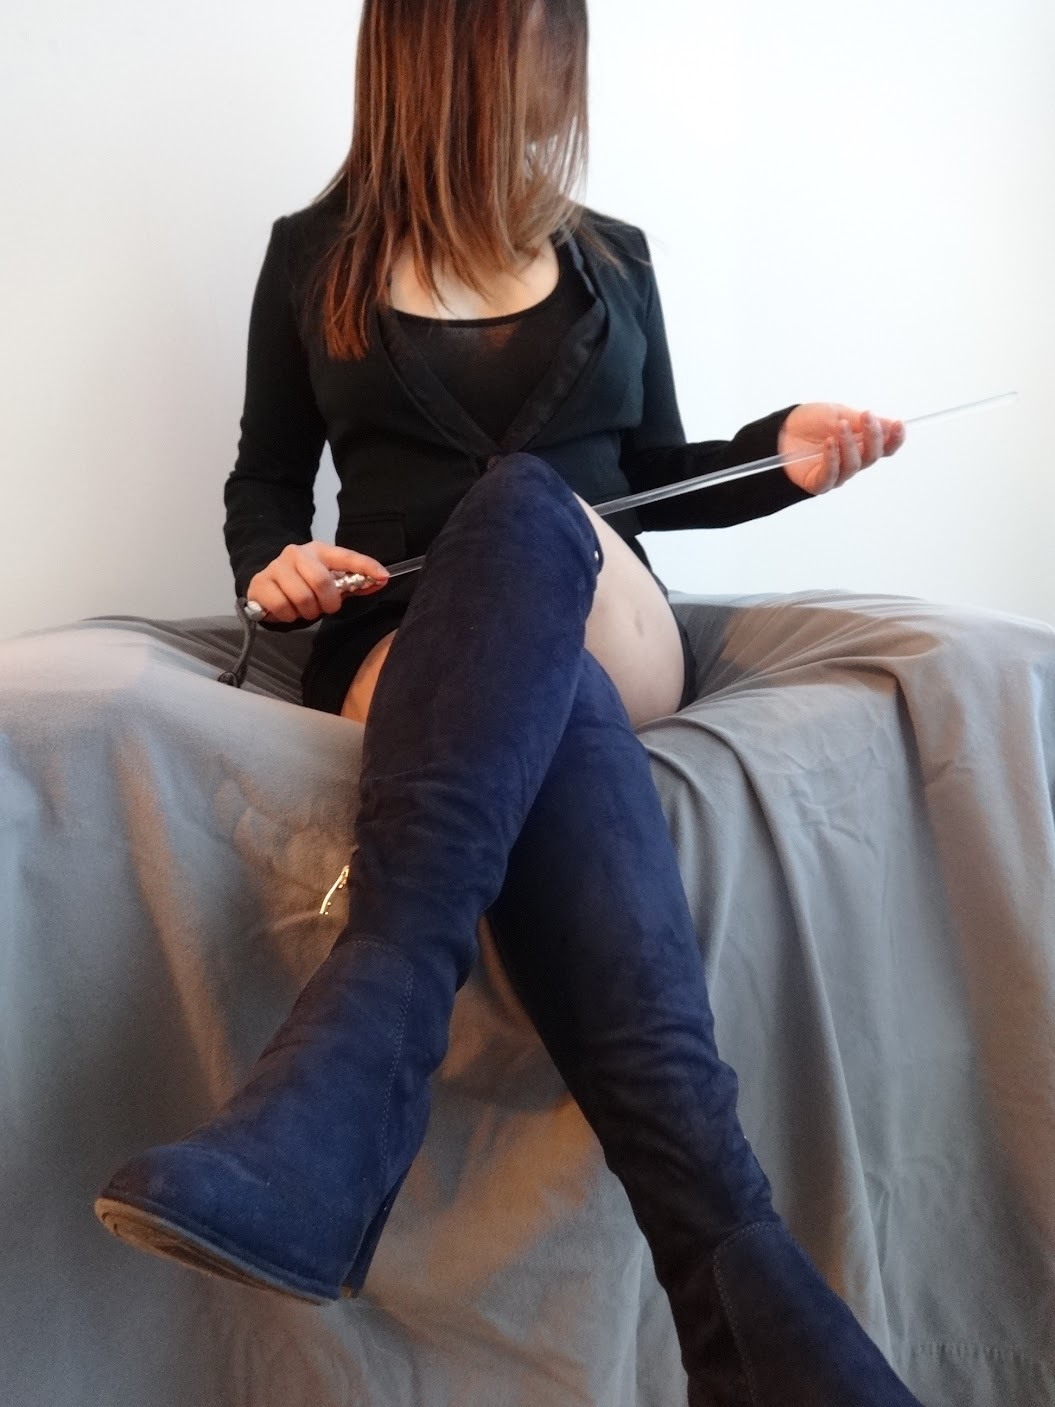 Asian domestic disciplinarian in thigh high boots